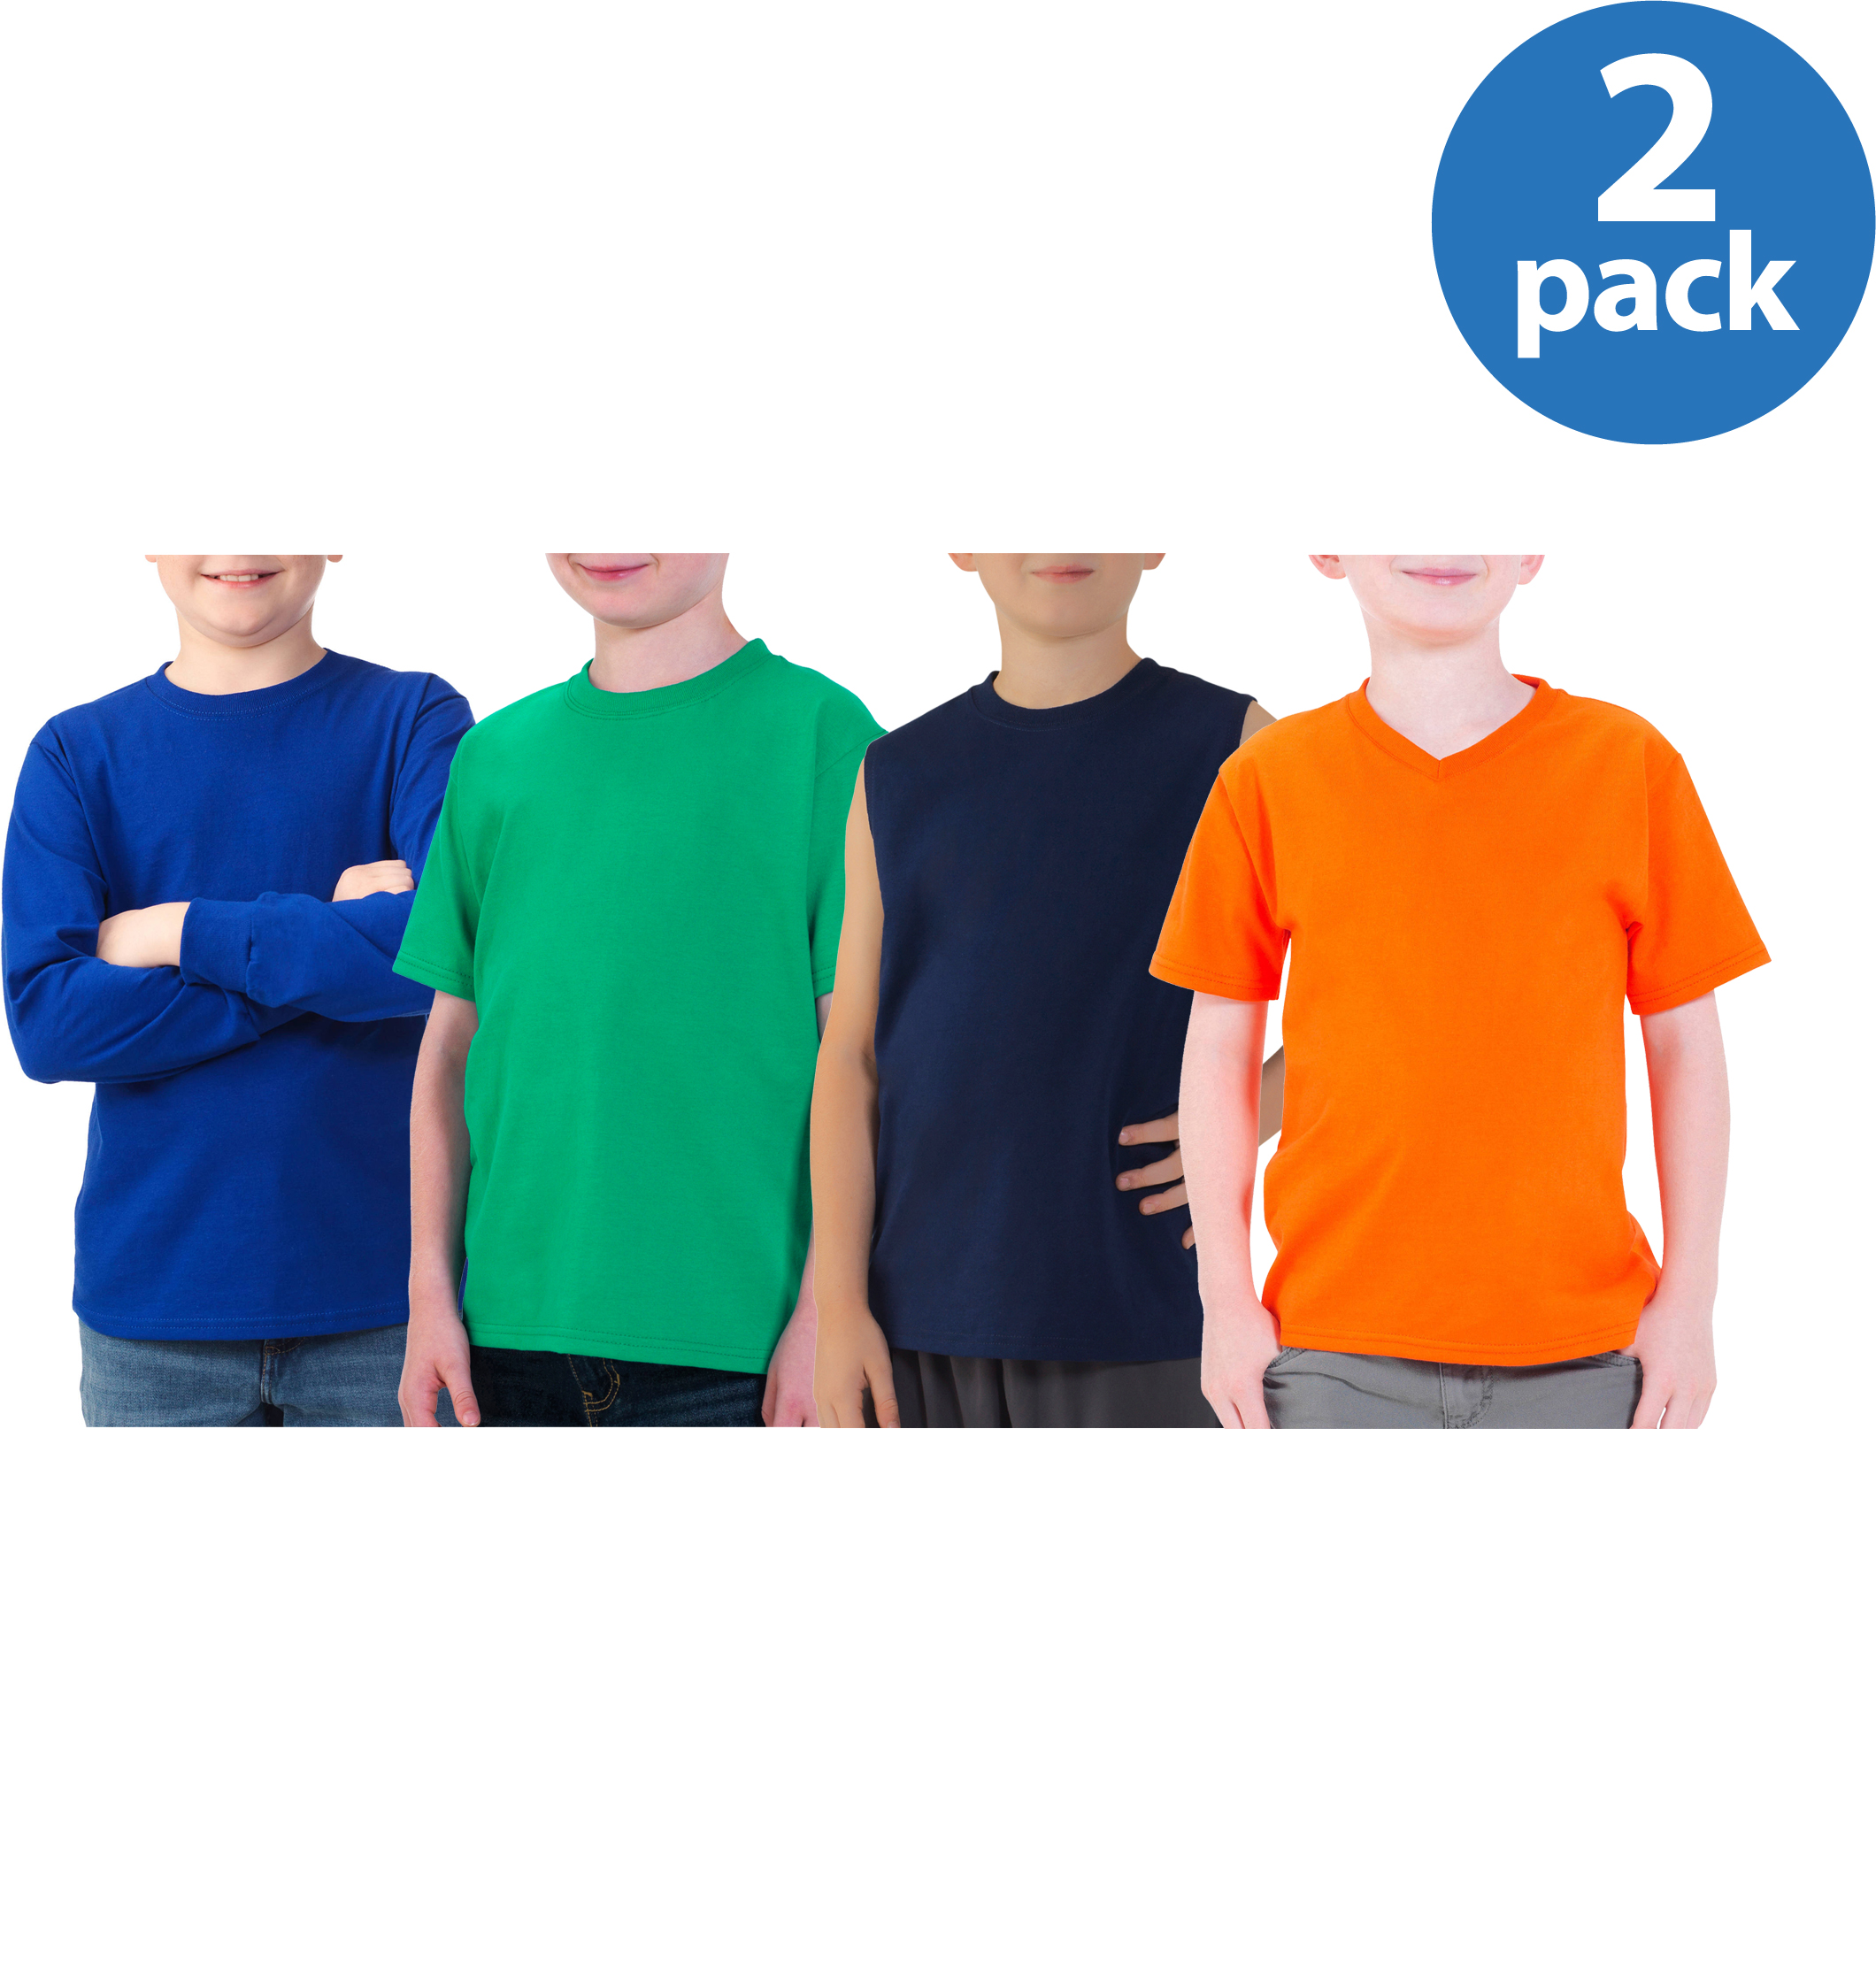 Fruit of the Loom Boys' Variety Shirts, Your Choice 2 Pack Value Bundle